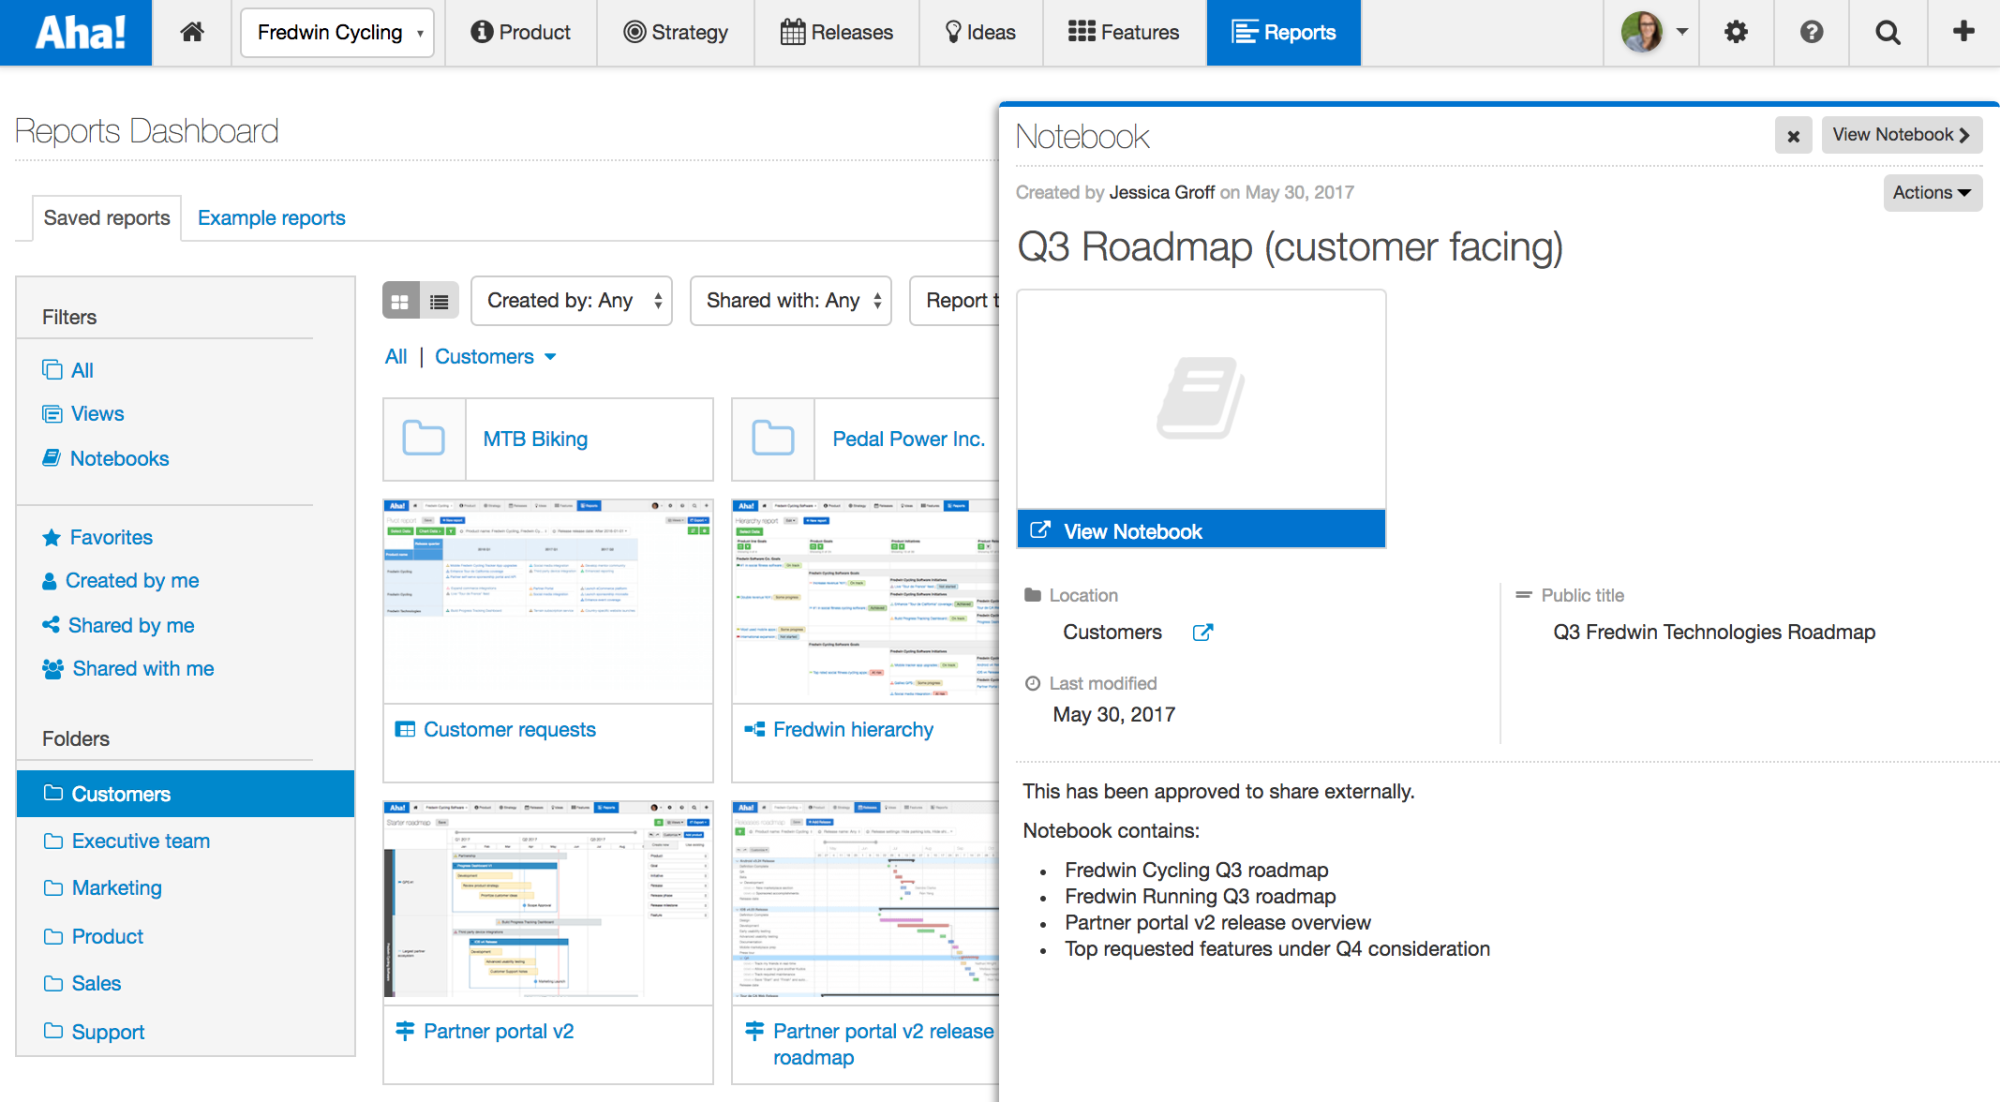 Blog - Just Launched! — The New Reports Dashboard for Product Management - inline image